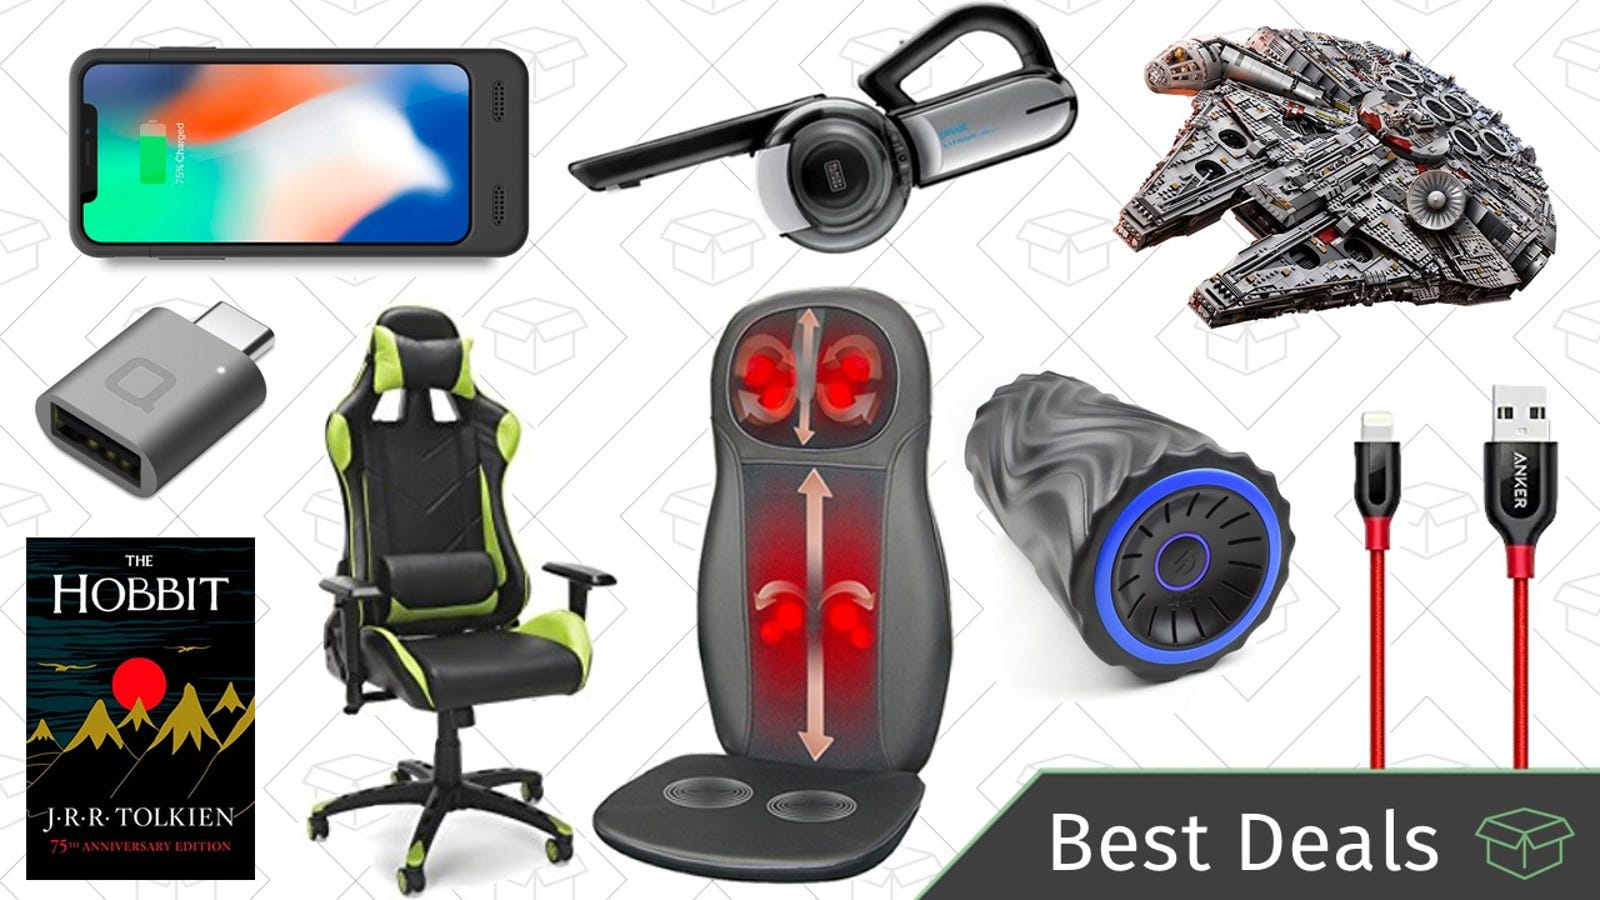 Thursdays best deals massagers gaming chairs millennium falcon thursdays best deals massagers gaming chairs millennium falcon and more fandeluxe Choice Image